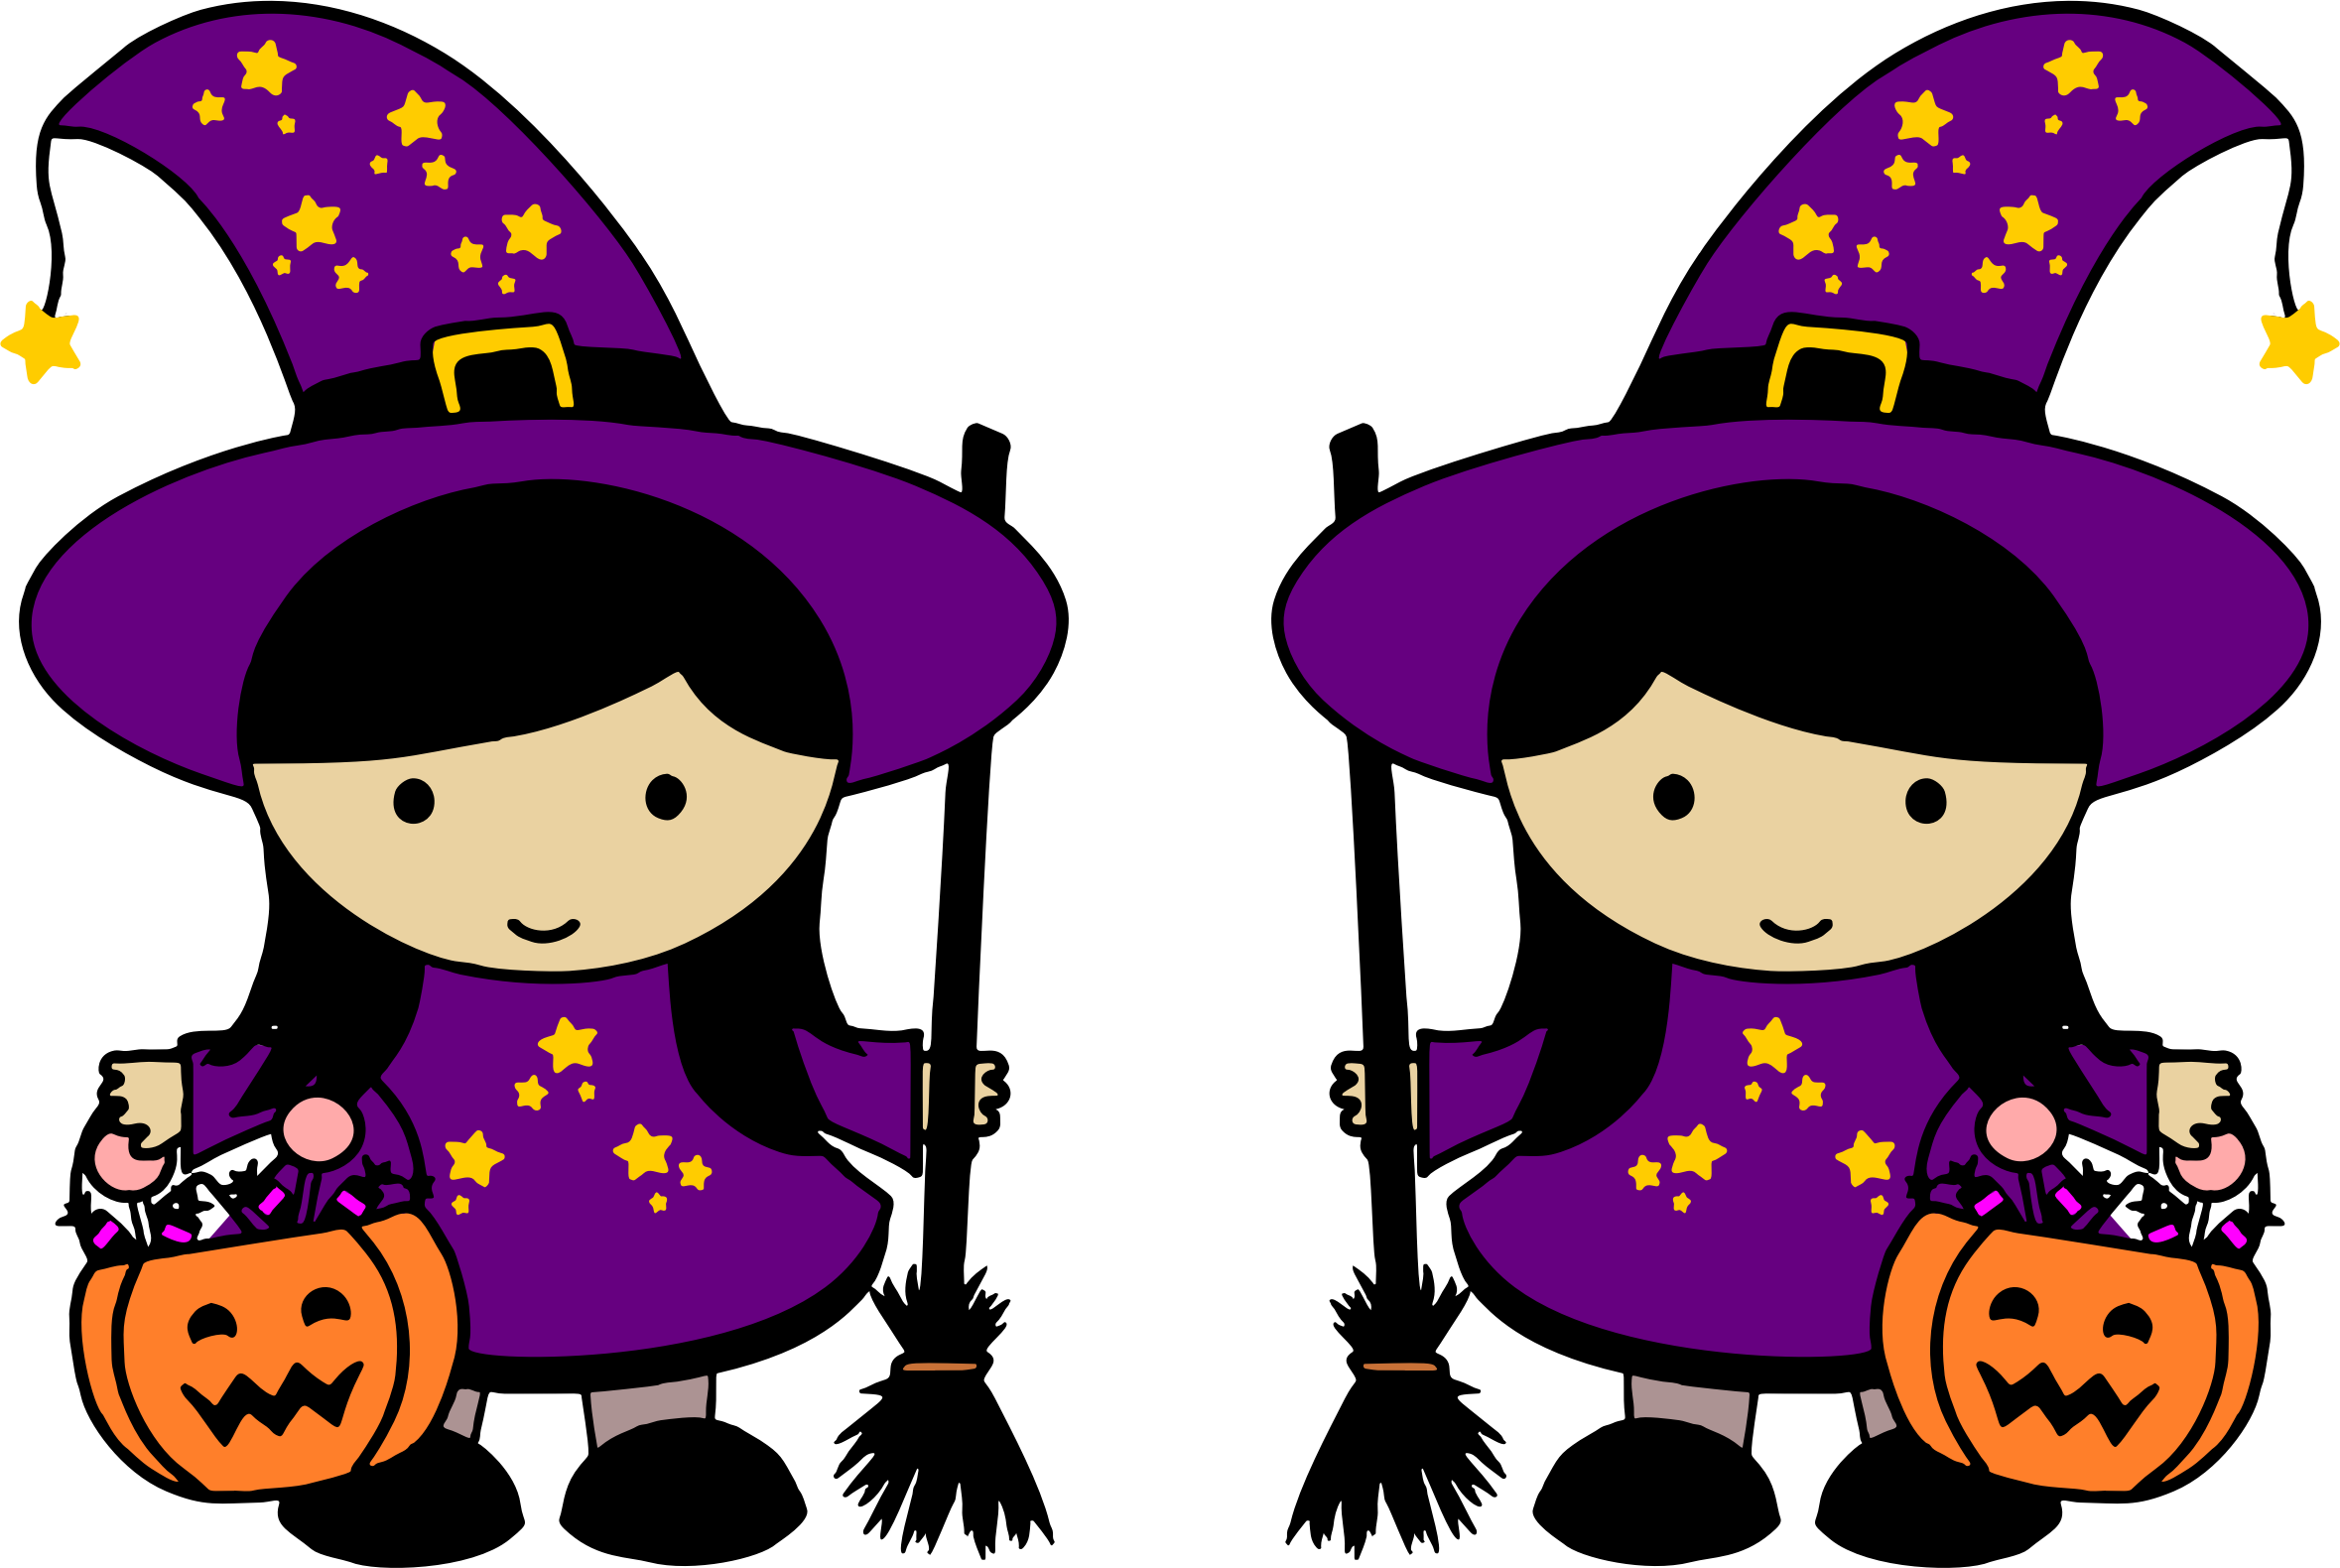 royalty free library Twin halloween big image. Witches clipart